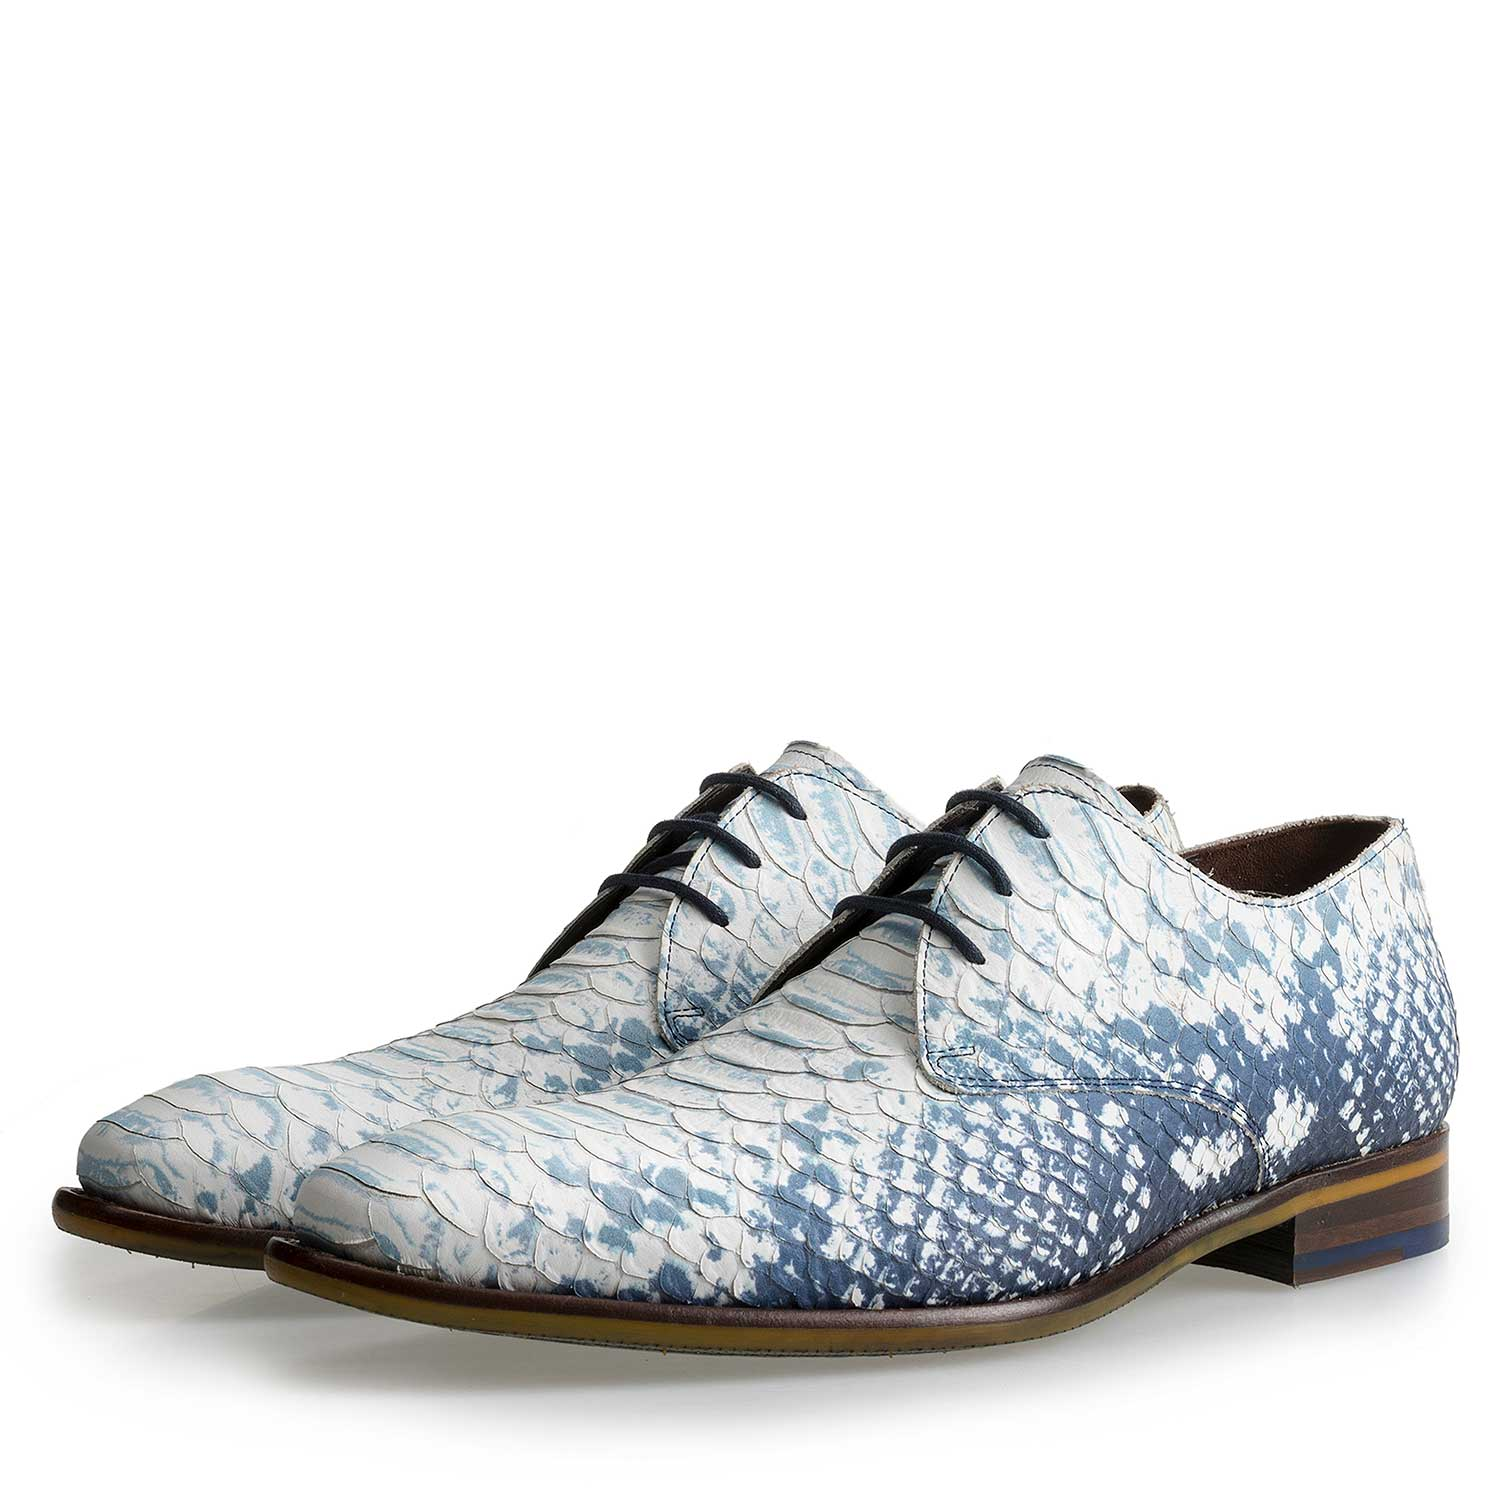 14109/03 - Dark blue leather lace-shoe with a snake print